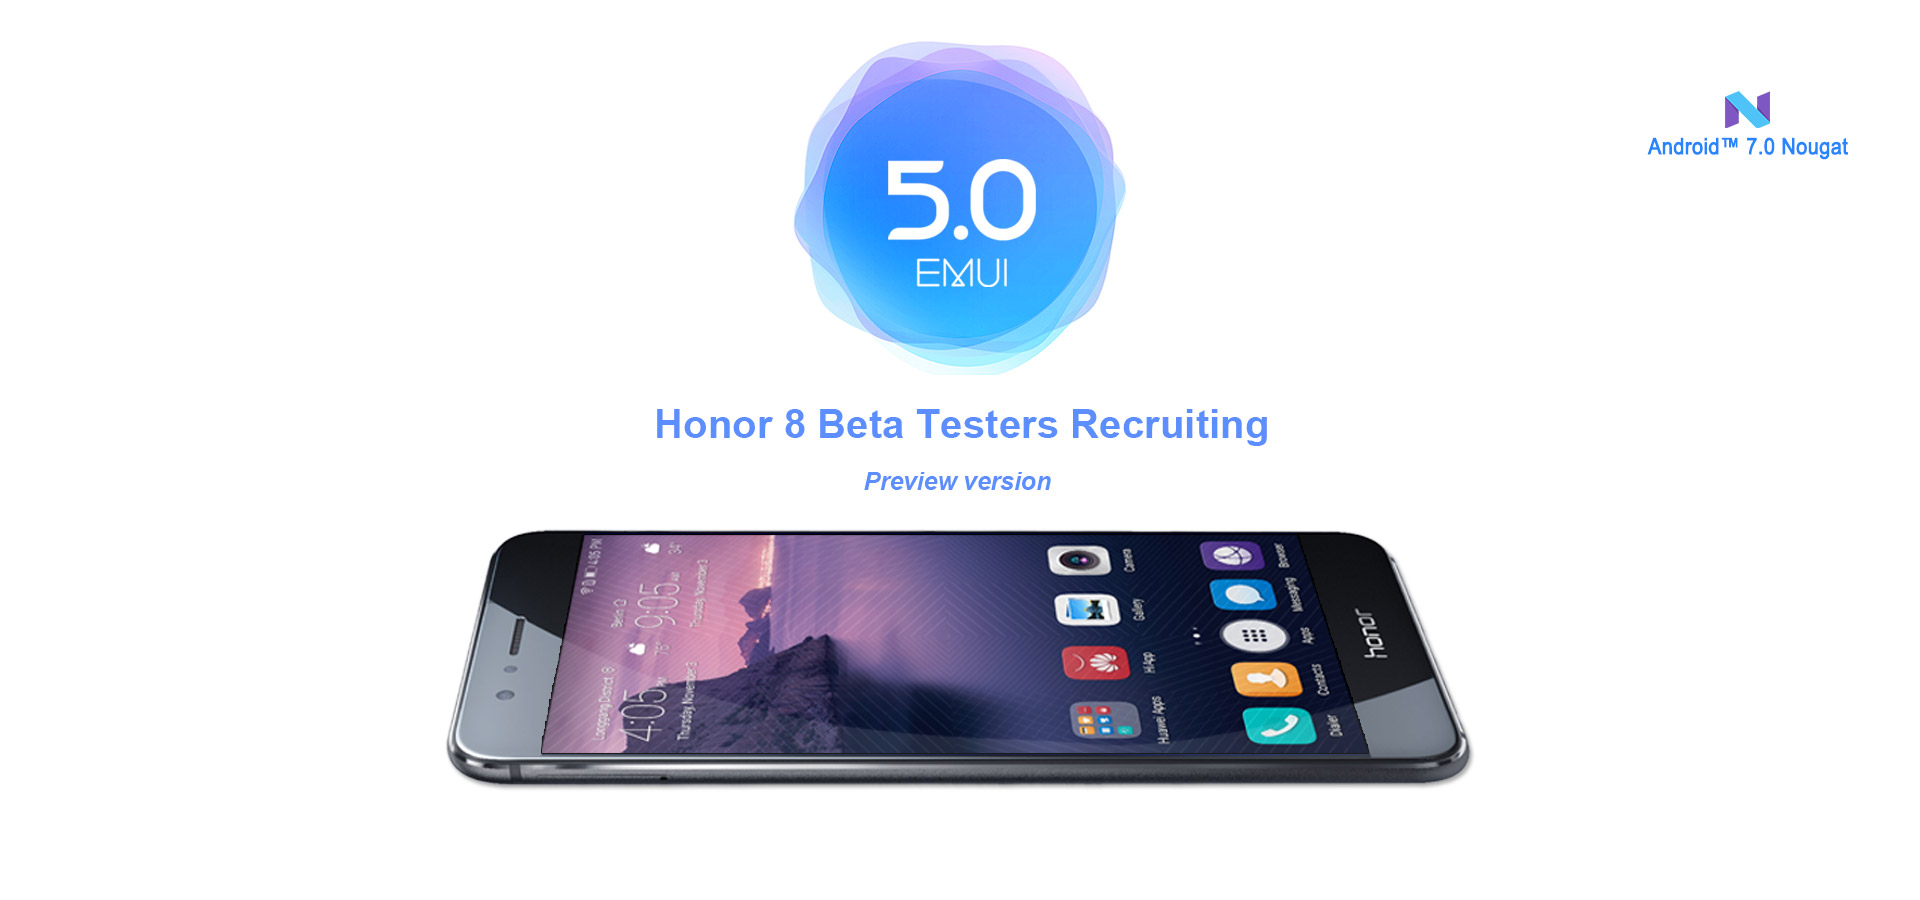 Honor 8 Android 7 0 Nougat beta firmware (EMUI 5) available